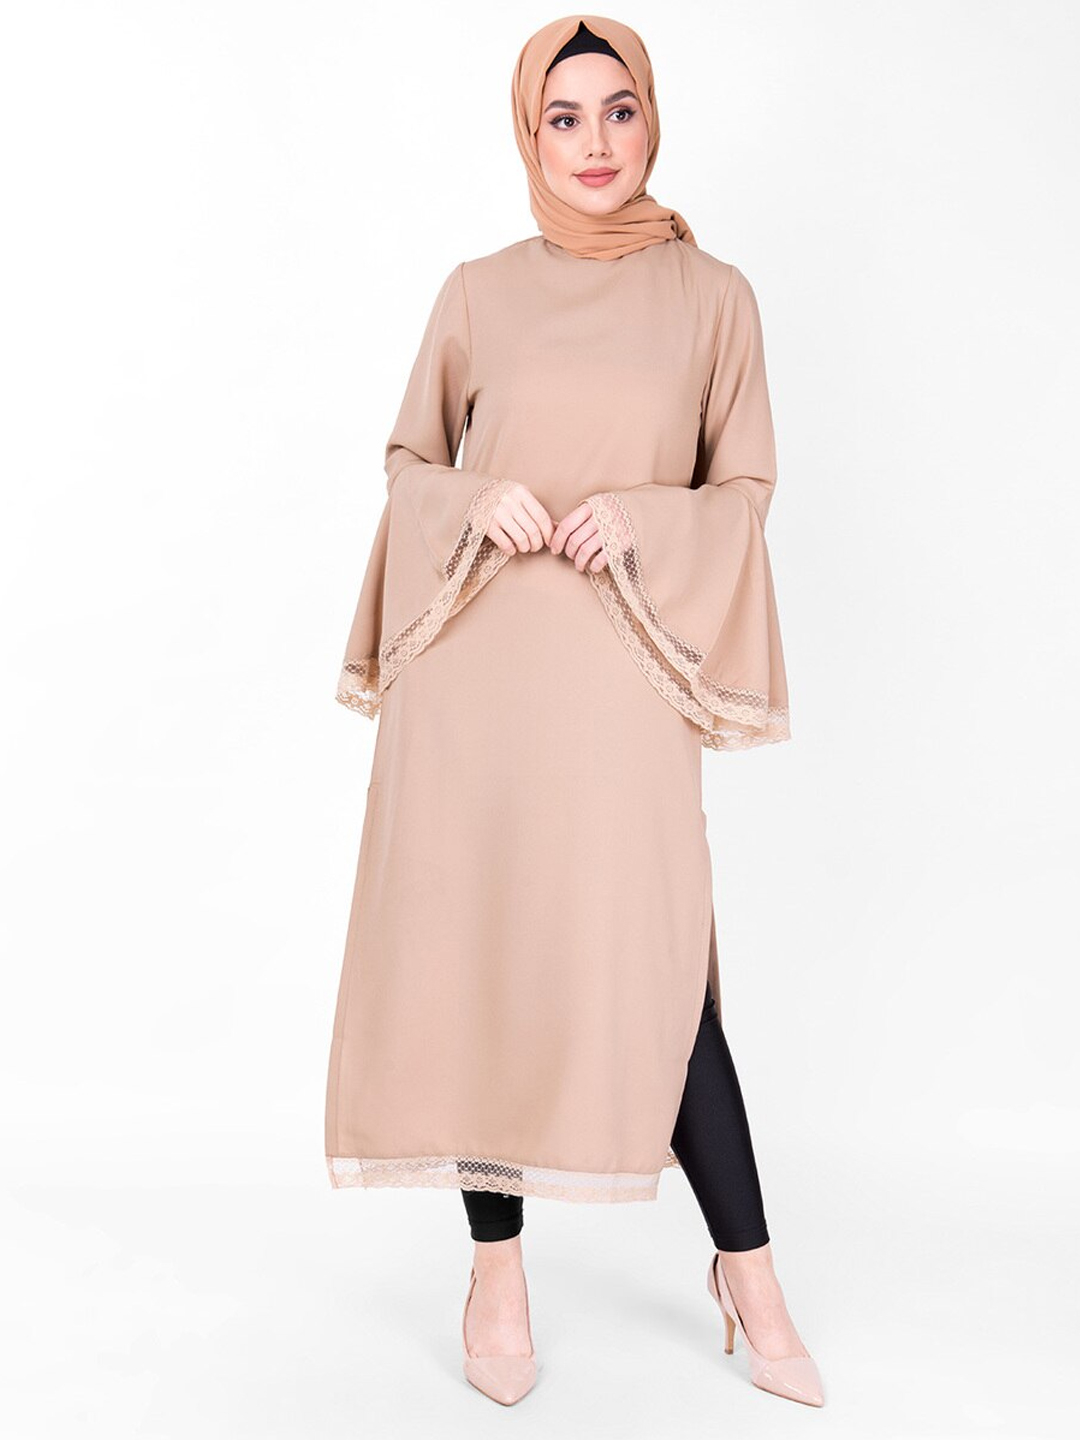 100% Polyster Midi Dress With Lace Work Bell Sleeves In Beige